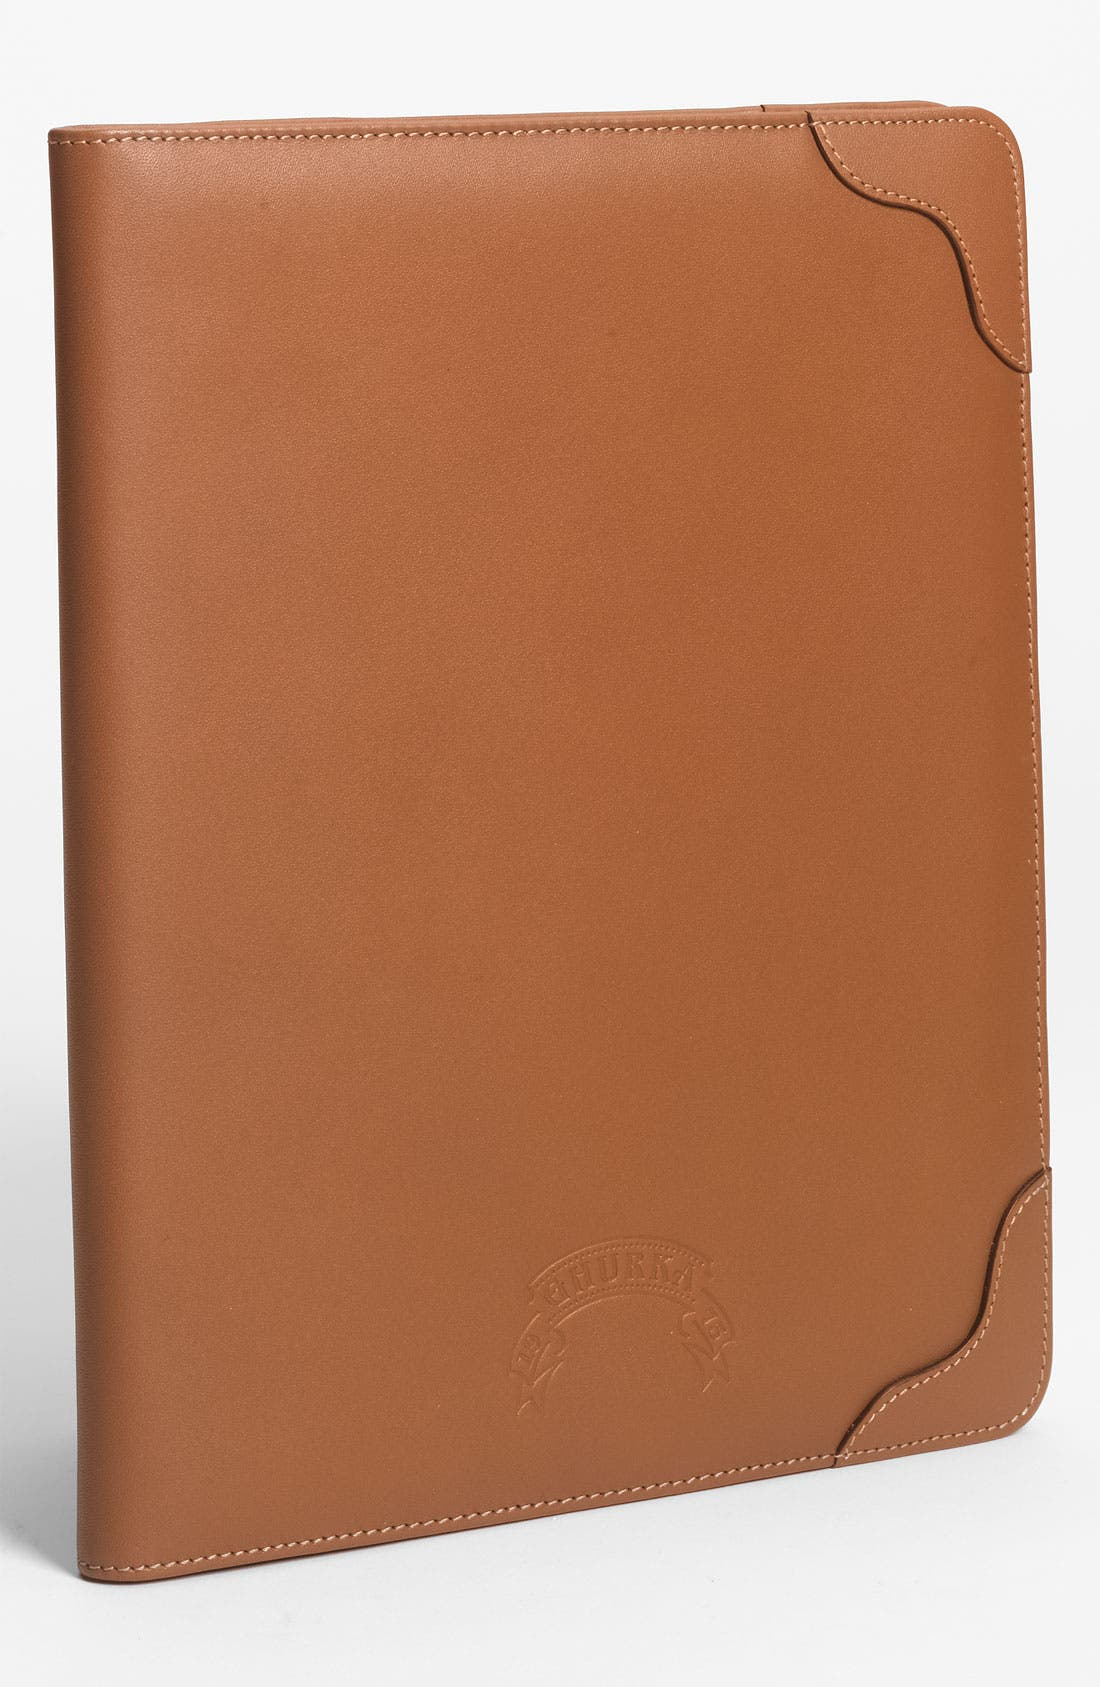 Main Image - Ghurka Flap Over iPad Case